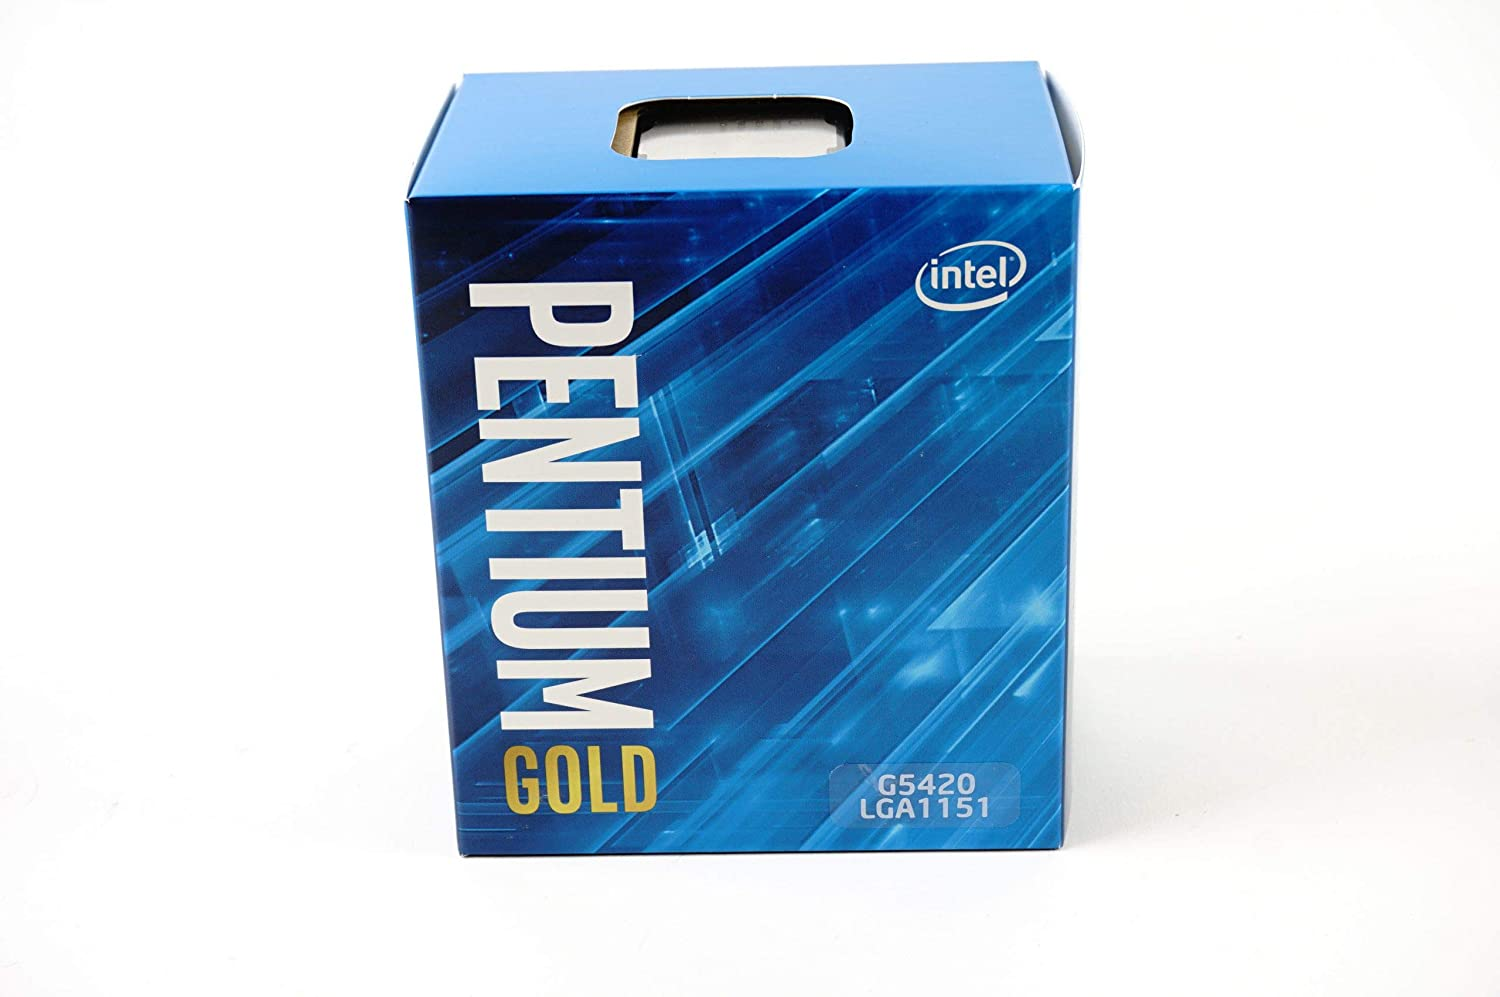 Intel Pentium Gold G5420 Desktop Processor 2 Core LGA1151 300 Series